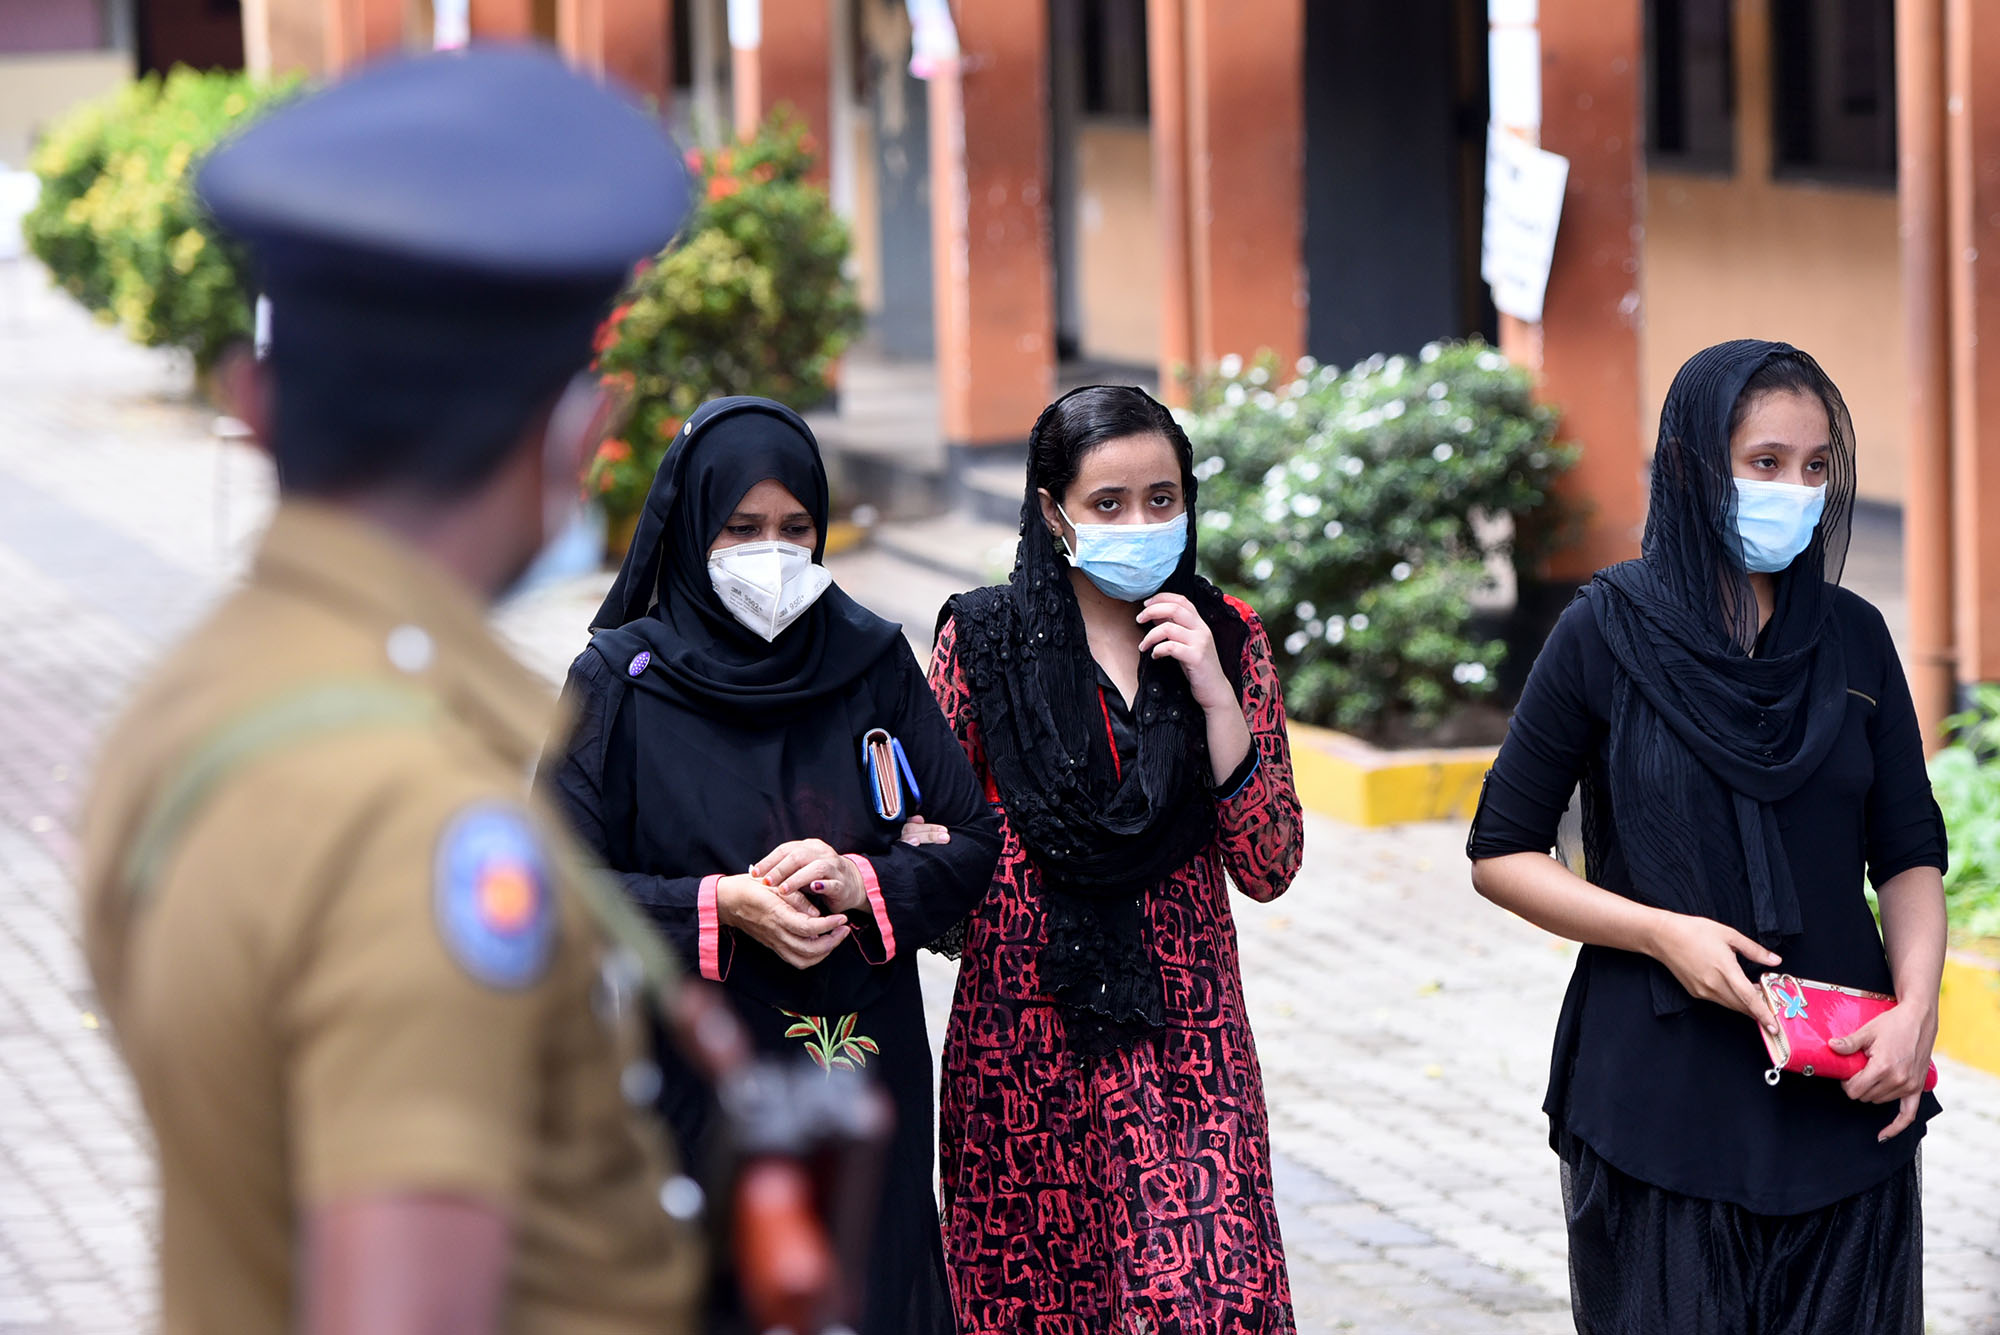 Three women arrive at a polling station preparing to cast their votes during the parliamentary election in Colombo, Sri Lanka, on August 5, 2020. Credit: Ruwan Walpola/Shutterstock.com.